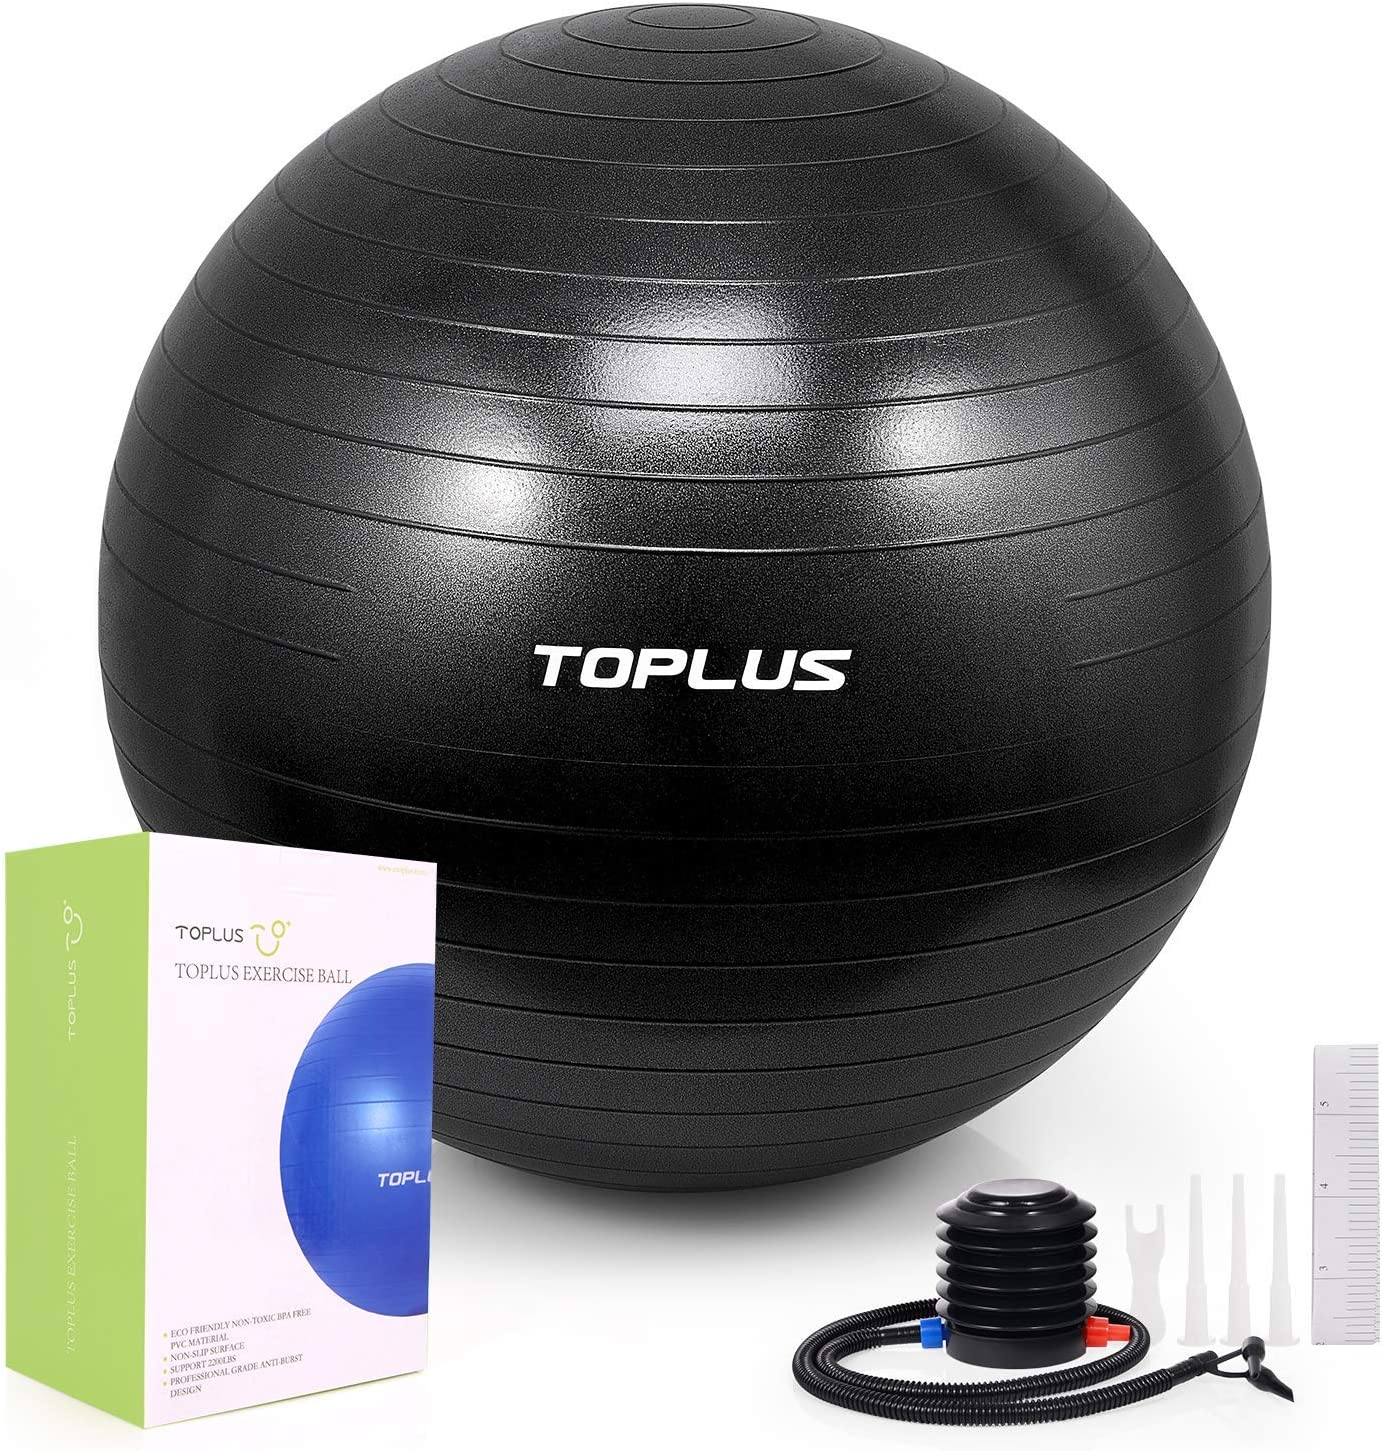 TOPLUS Exercise Ball (Multiple Sizes) Thick Yoga Ball Chair for Fitness, Stability, Balance, Pilates - Anti Burst Supports 2200lbs - Includes Quick ...